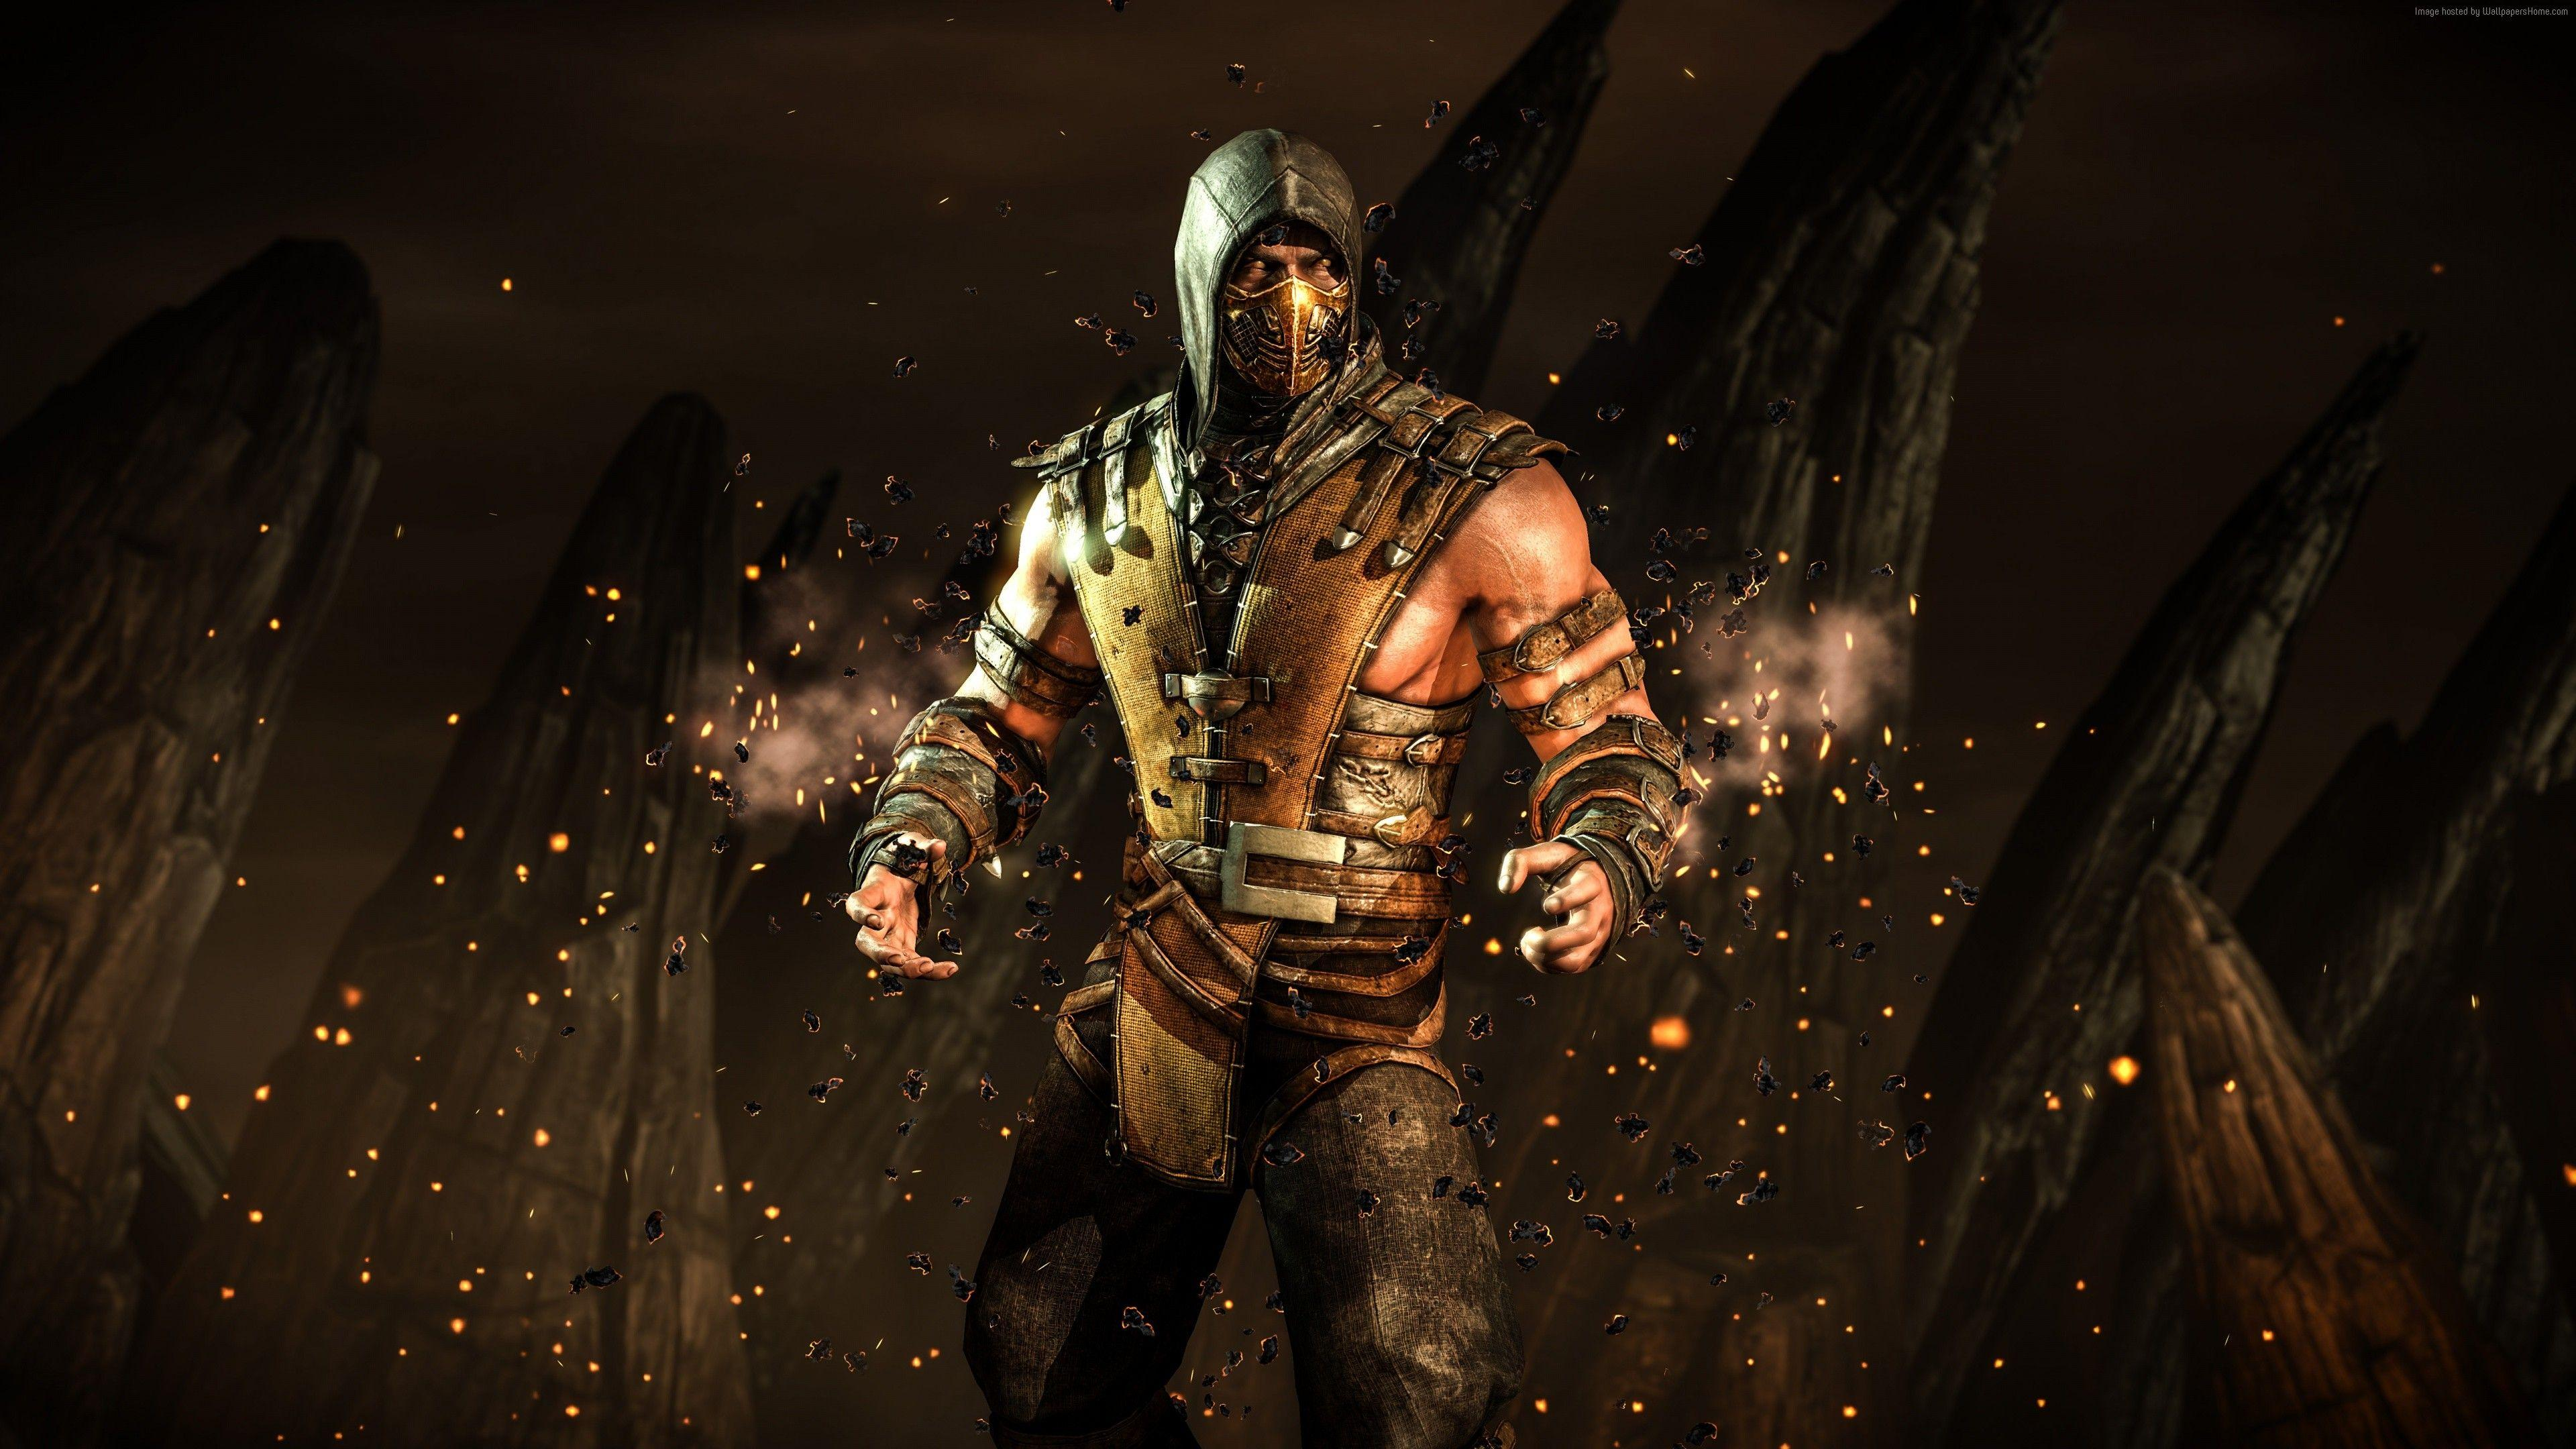 Wallpapers MORTAL KOMBAT X, scorpion, fighting, PS4, Xbox One, Games